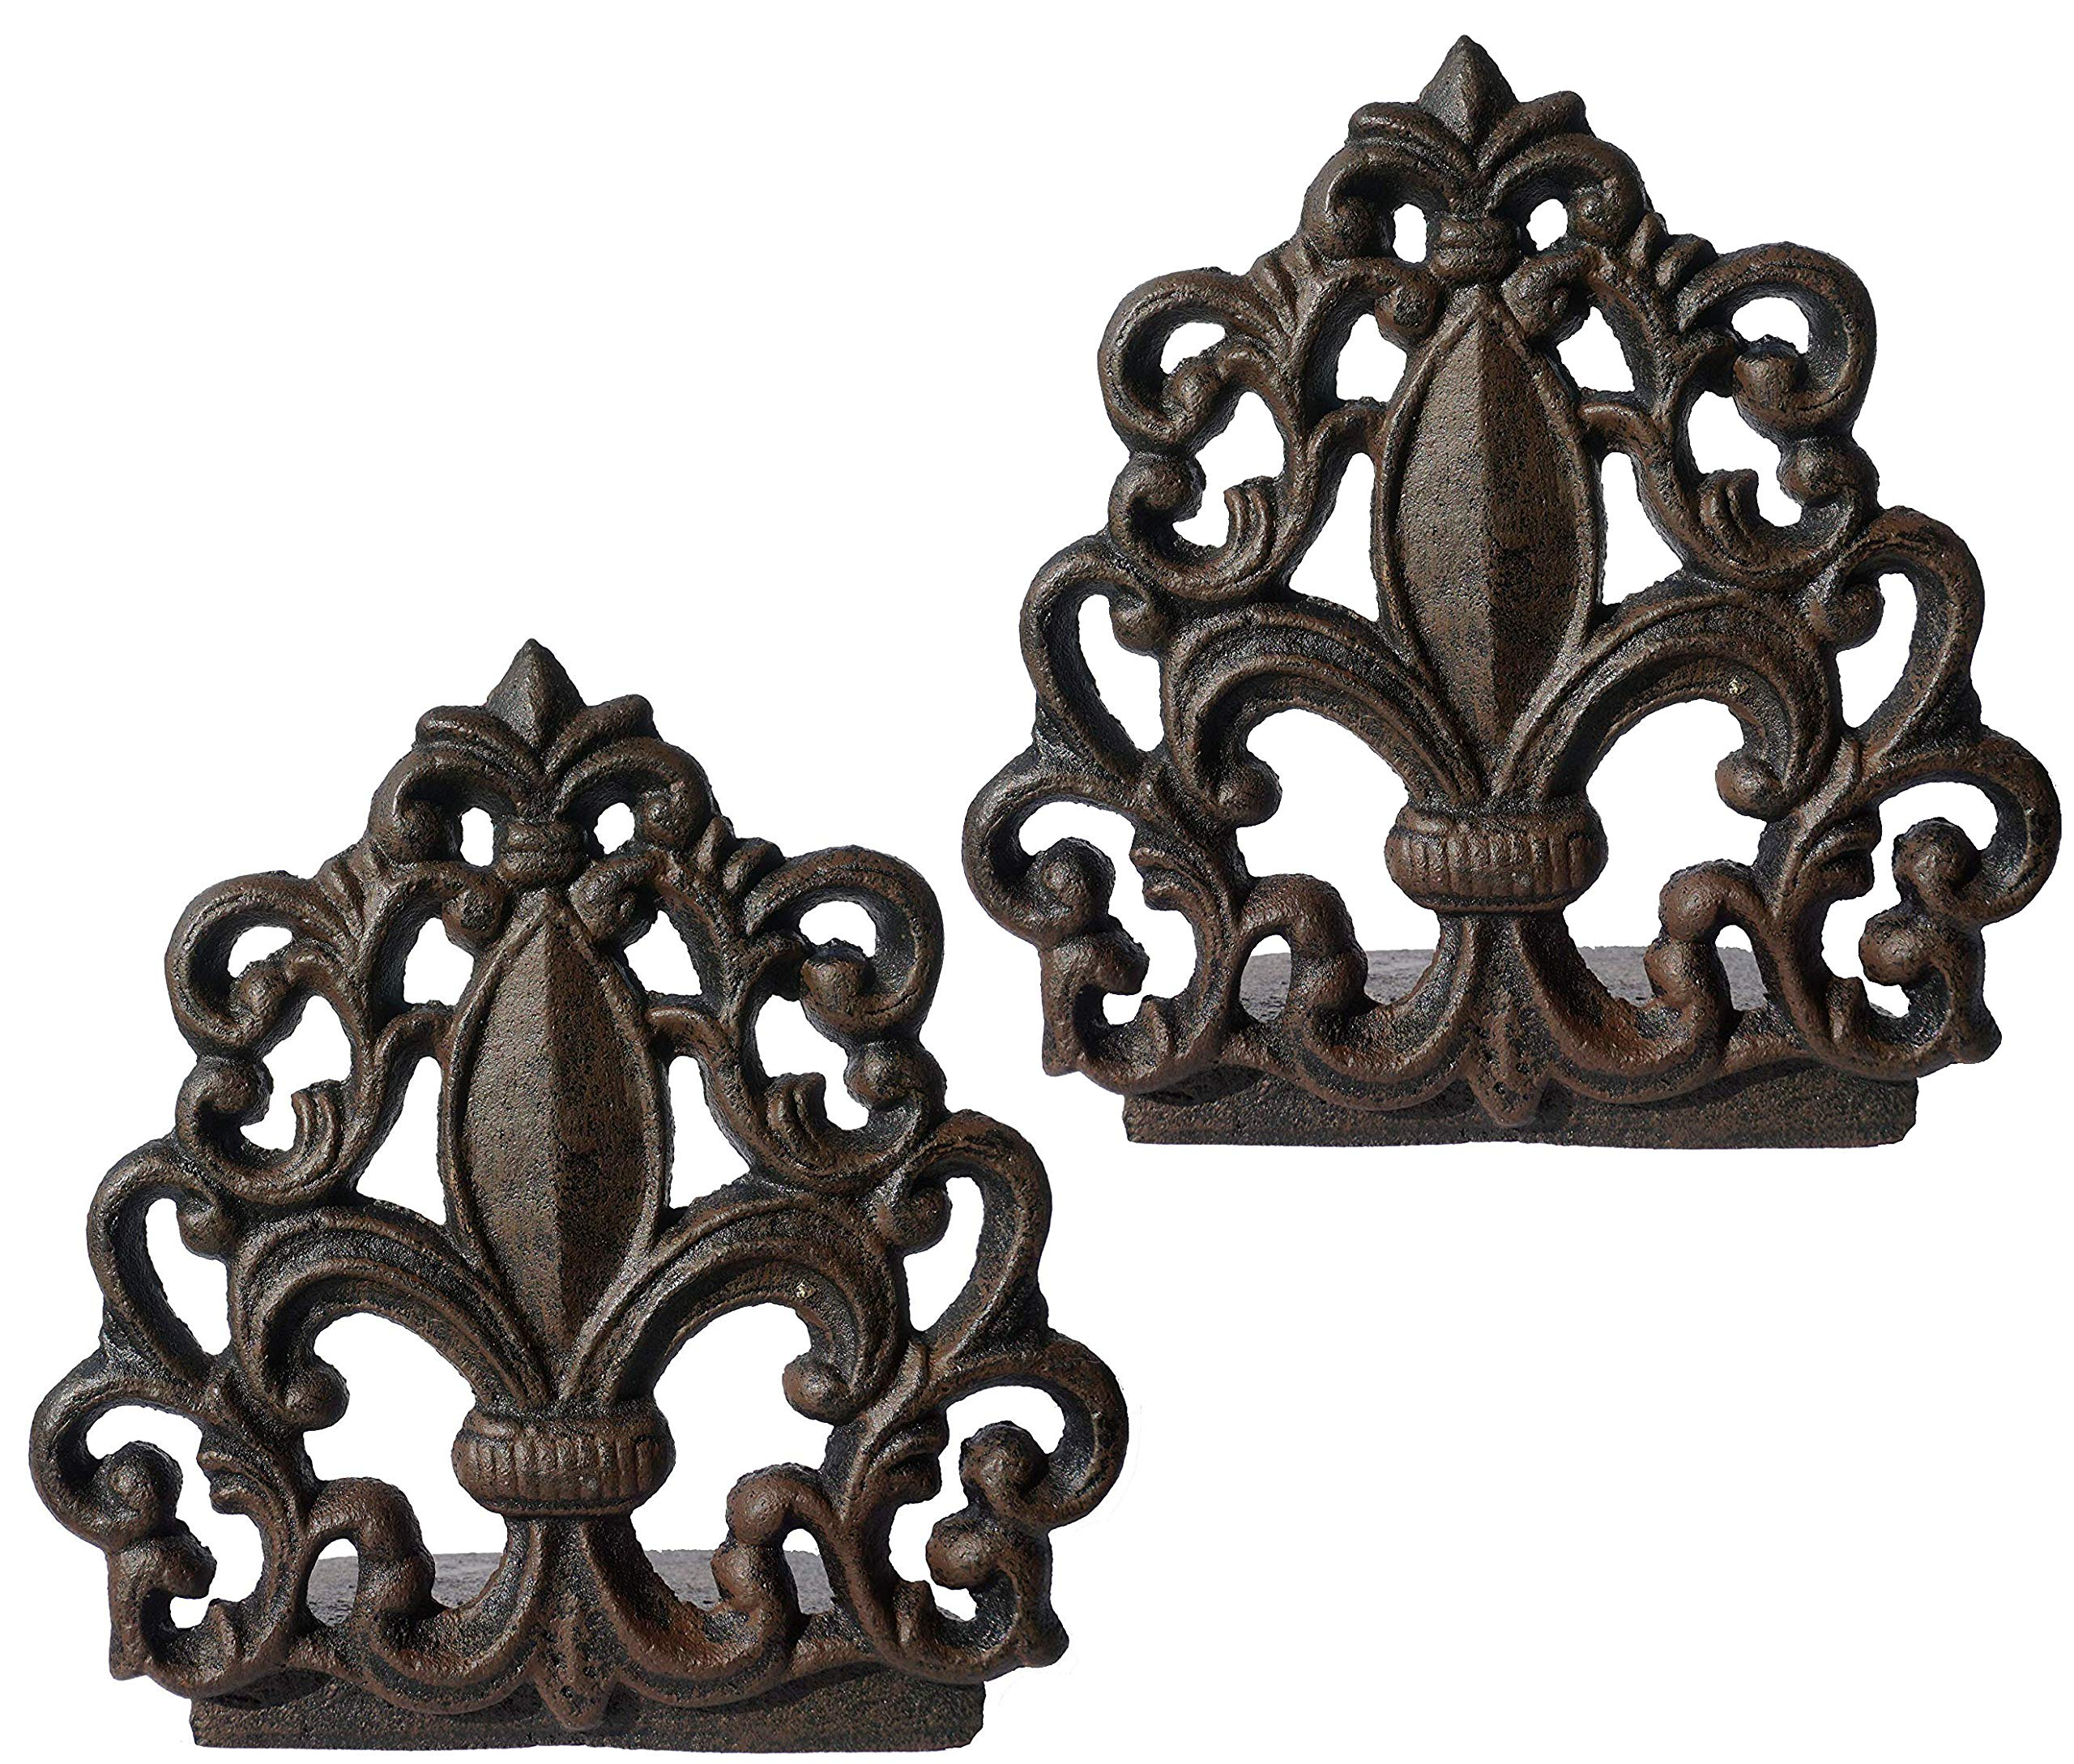 LuLu Decor, Cast Iron Fleur De Lis Door Stop, Door Stopper in Antique Black Finish, Beautiful and Useful Product, Simply Insert Flat Base Underneath Your Door Space, Works Great (2 Piece) by Lulu Decor